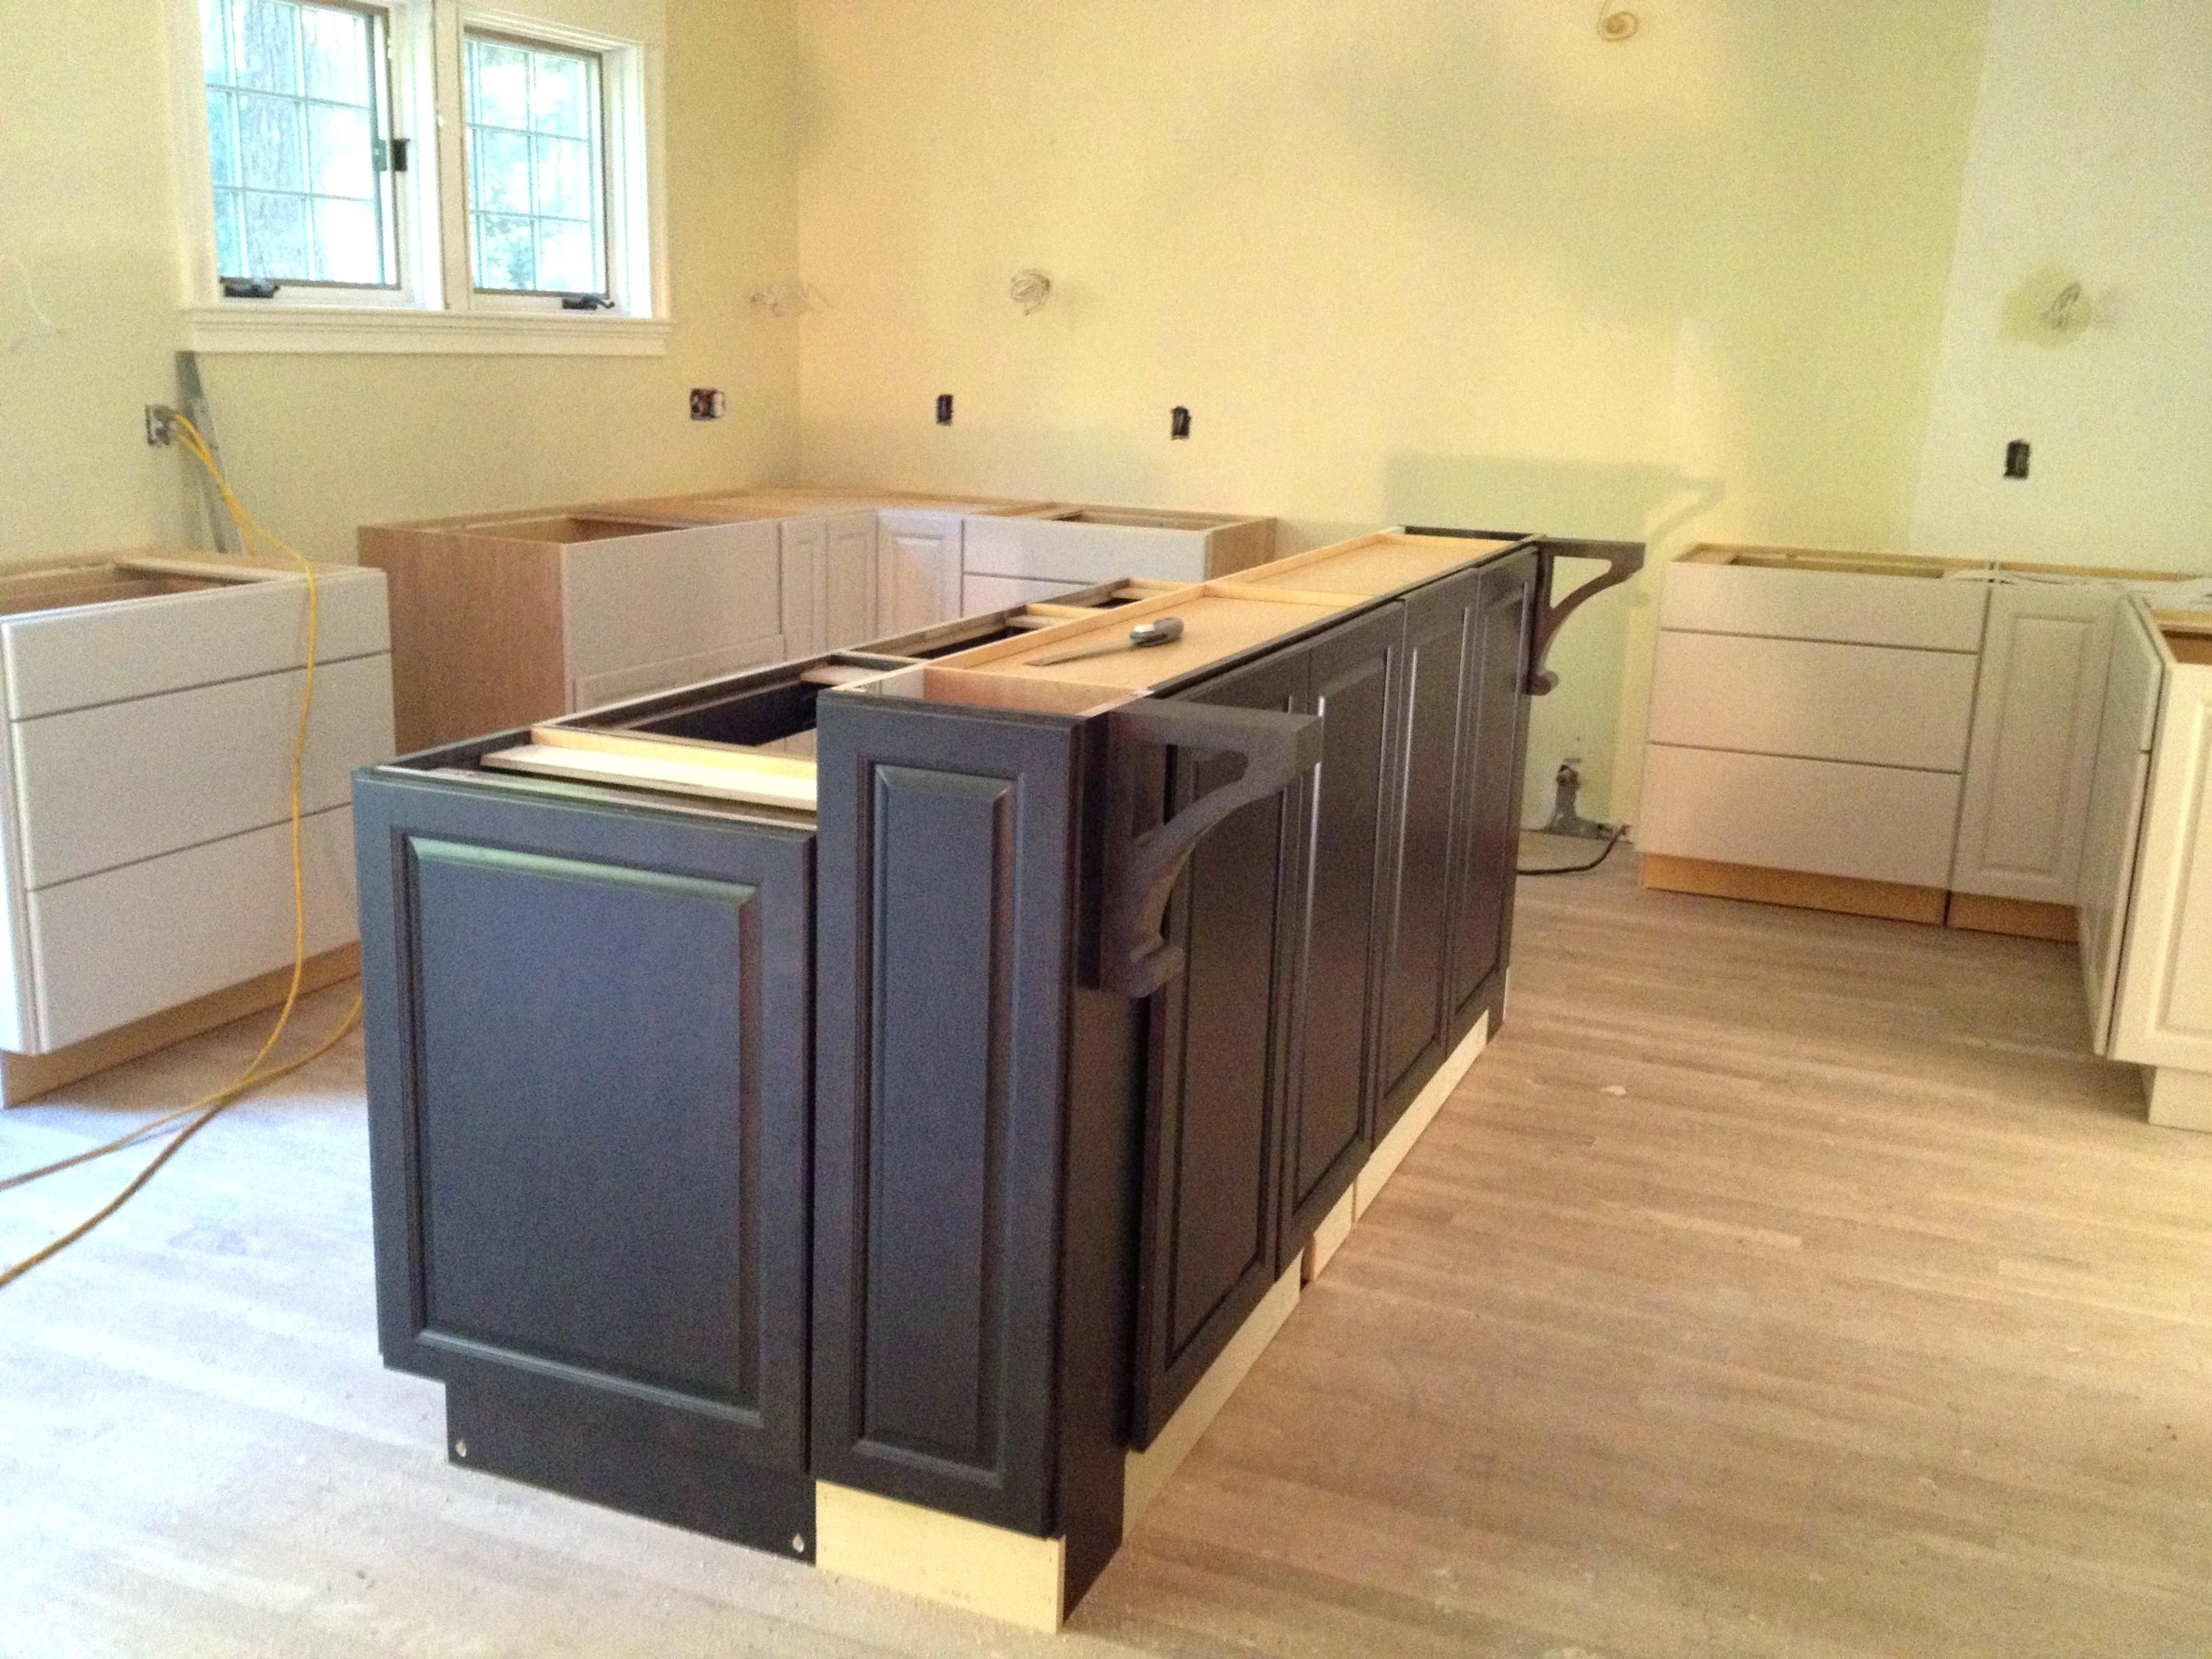 Building Kitchen Island Bar Breakfast Islnd Cbinets Ing Diy Base Cabinets Building A Kitchen Diy Kitchen Island Kitchen Island Plans